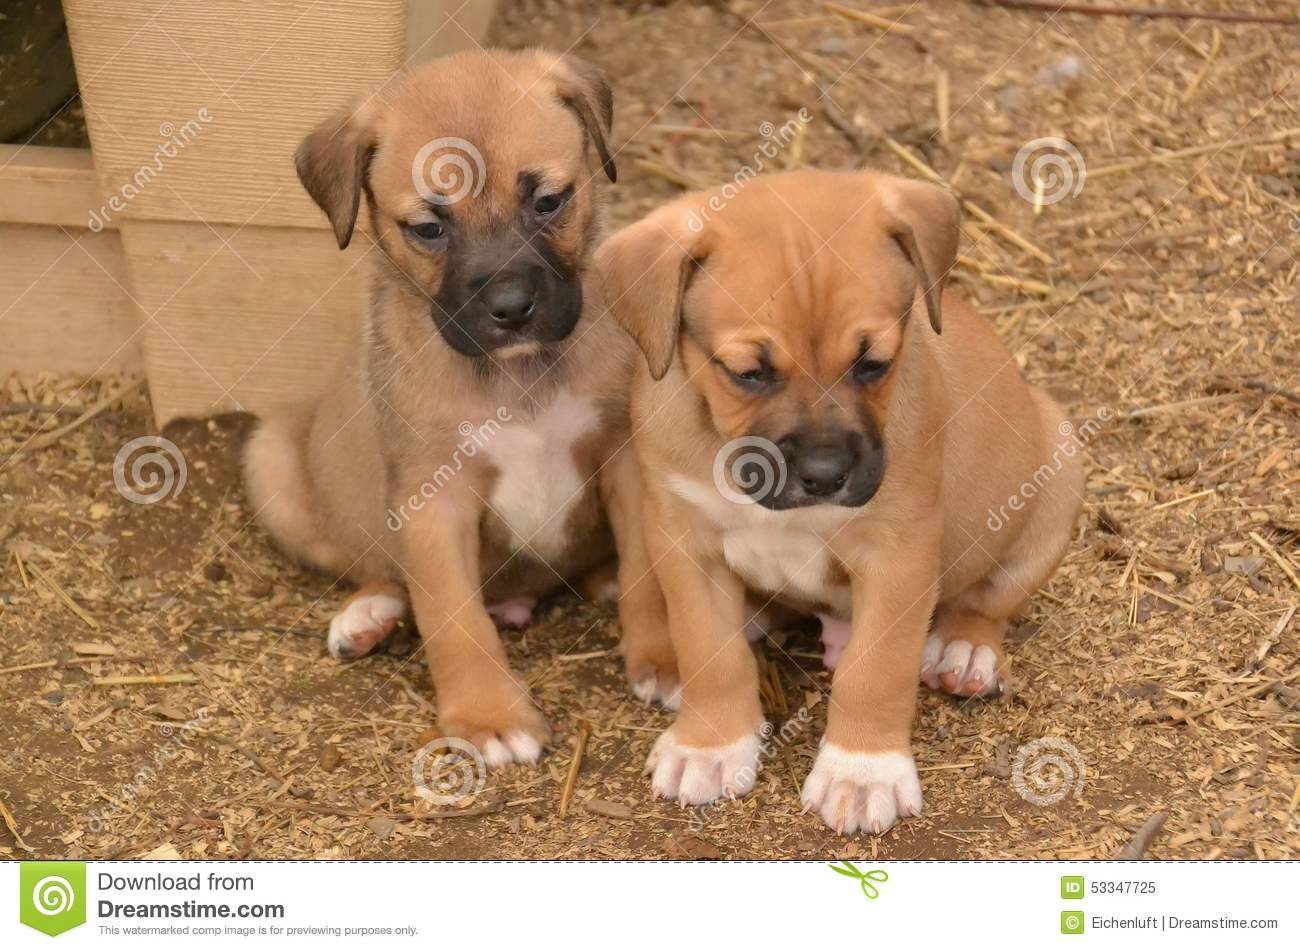 Puppies0001 stock image  Image of youngster, trusting - 53347725